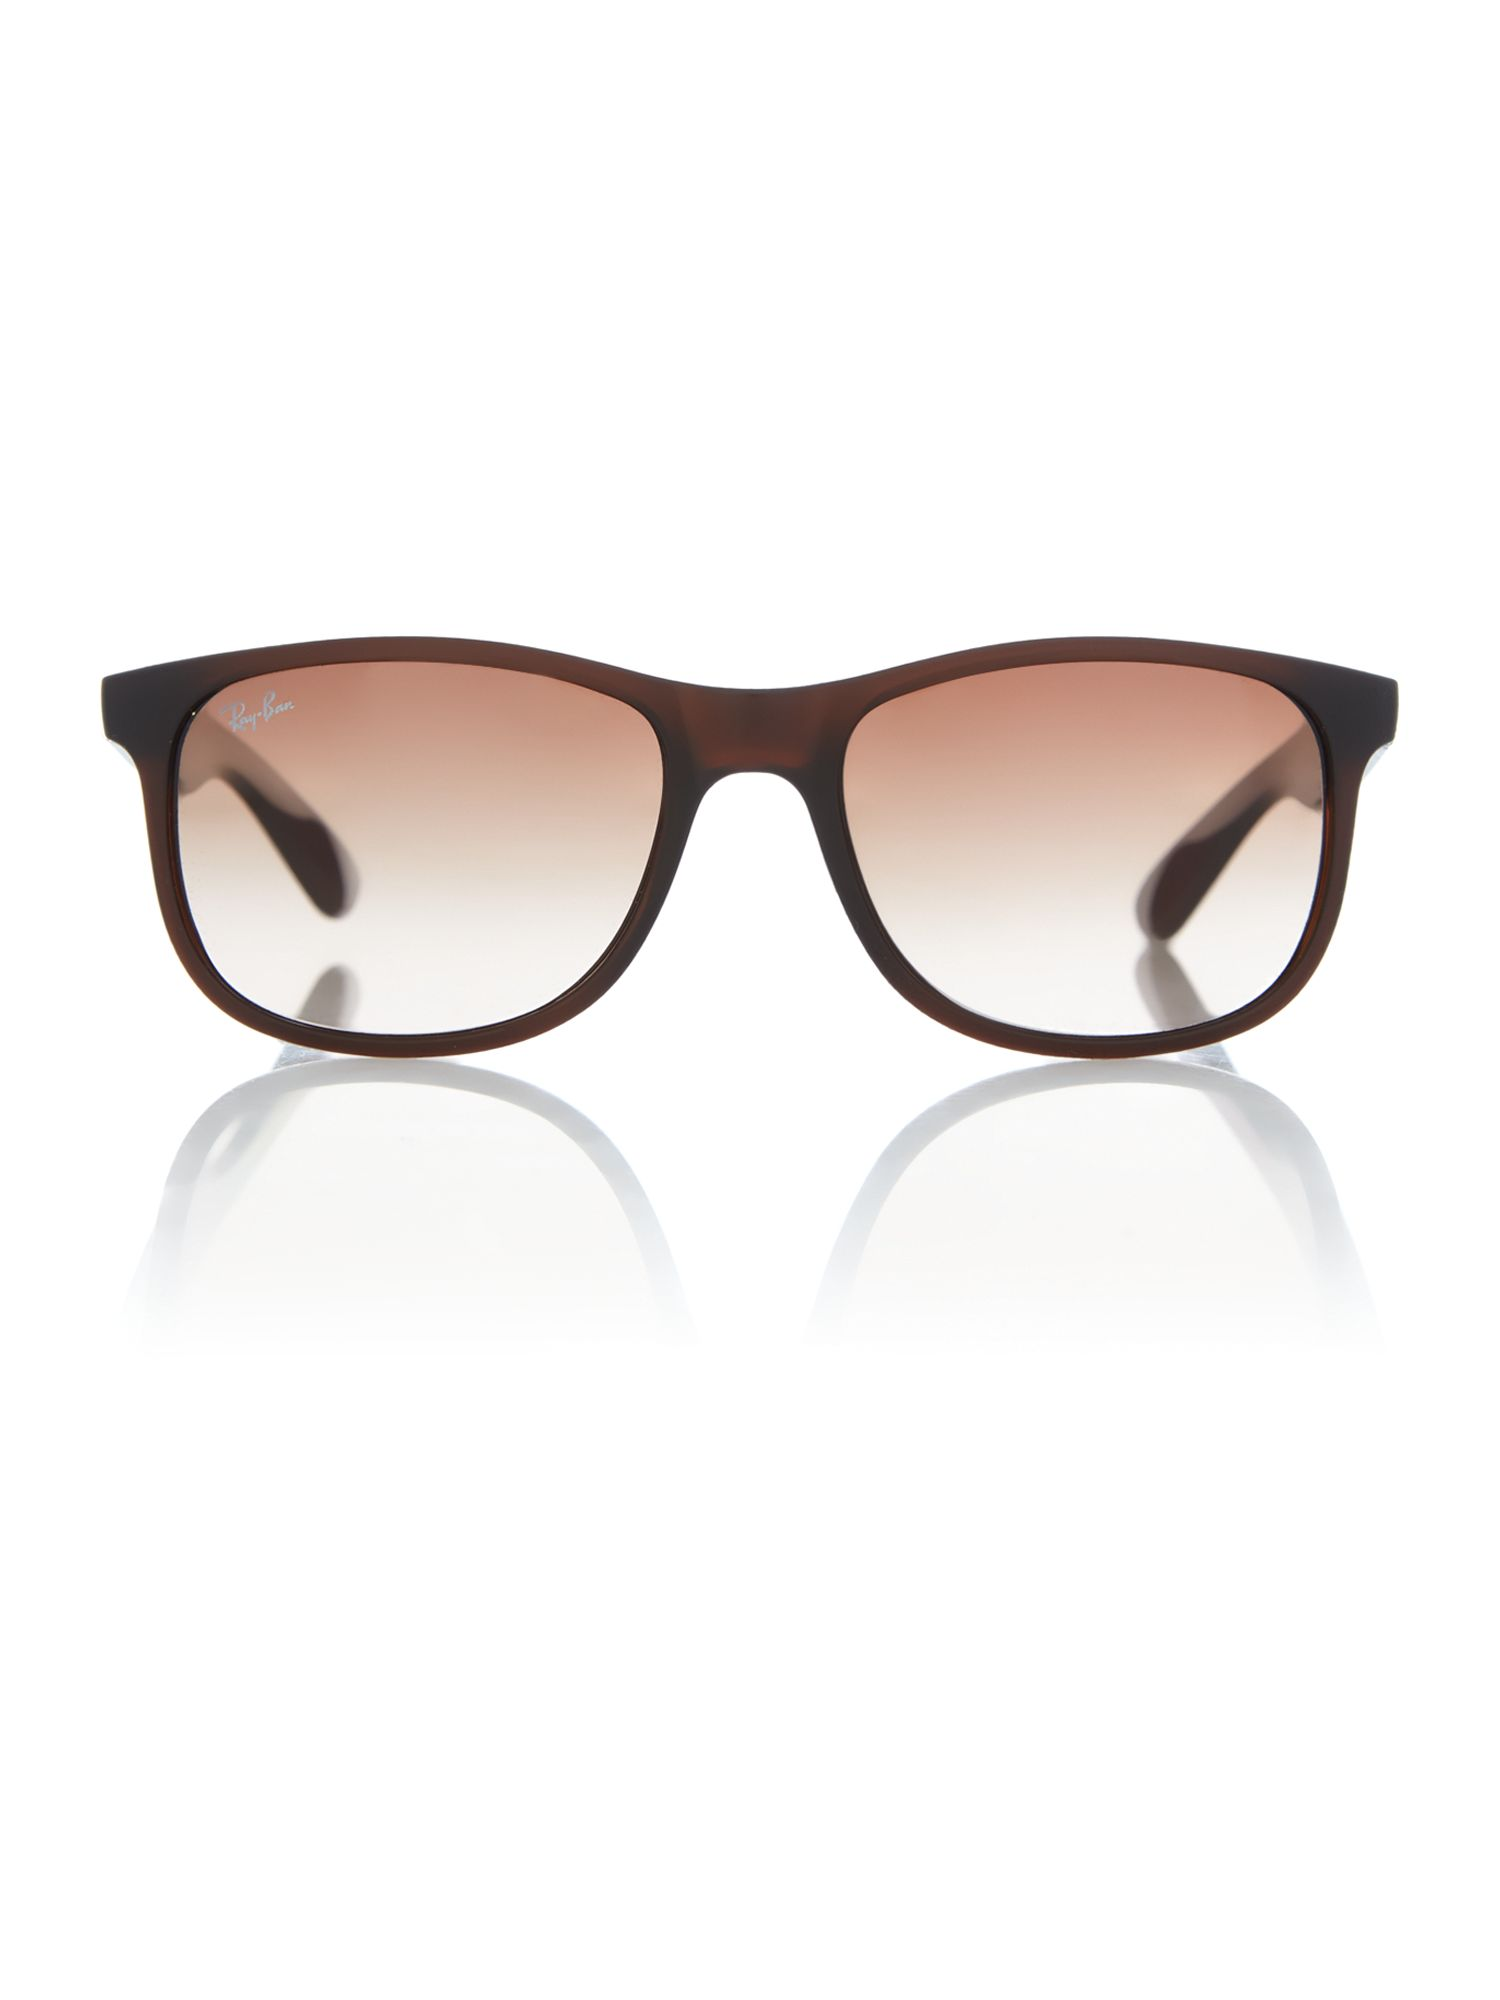 Rb4202 men`s rectangle sunglasses